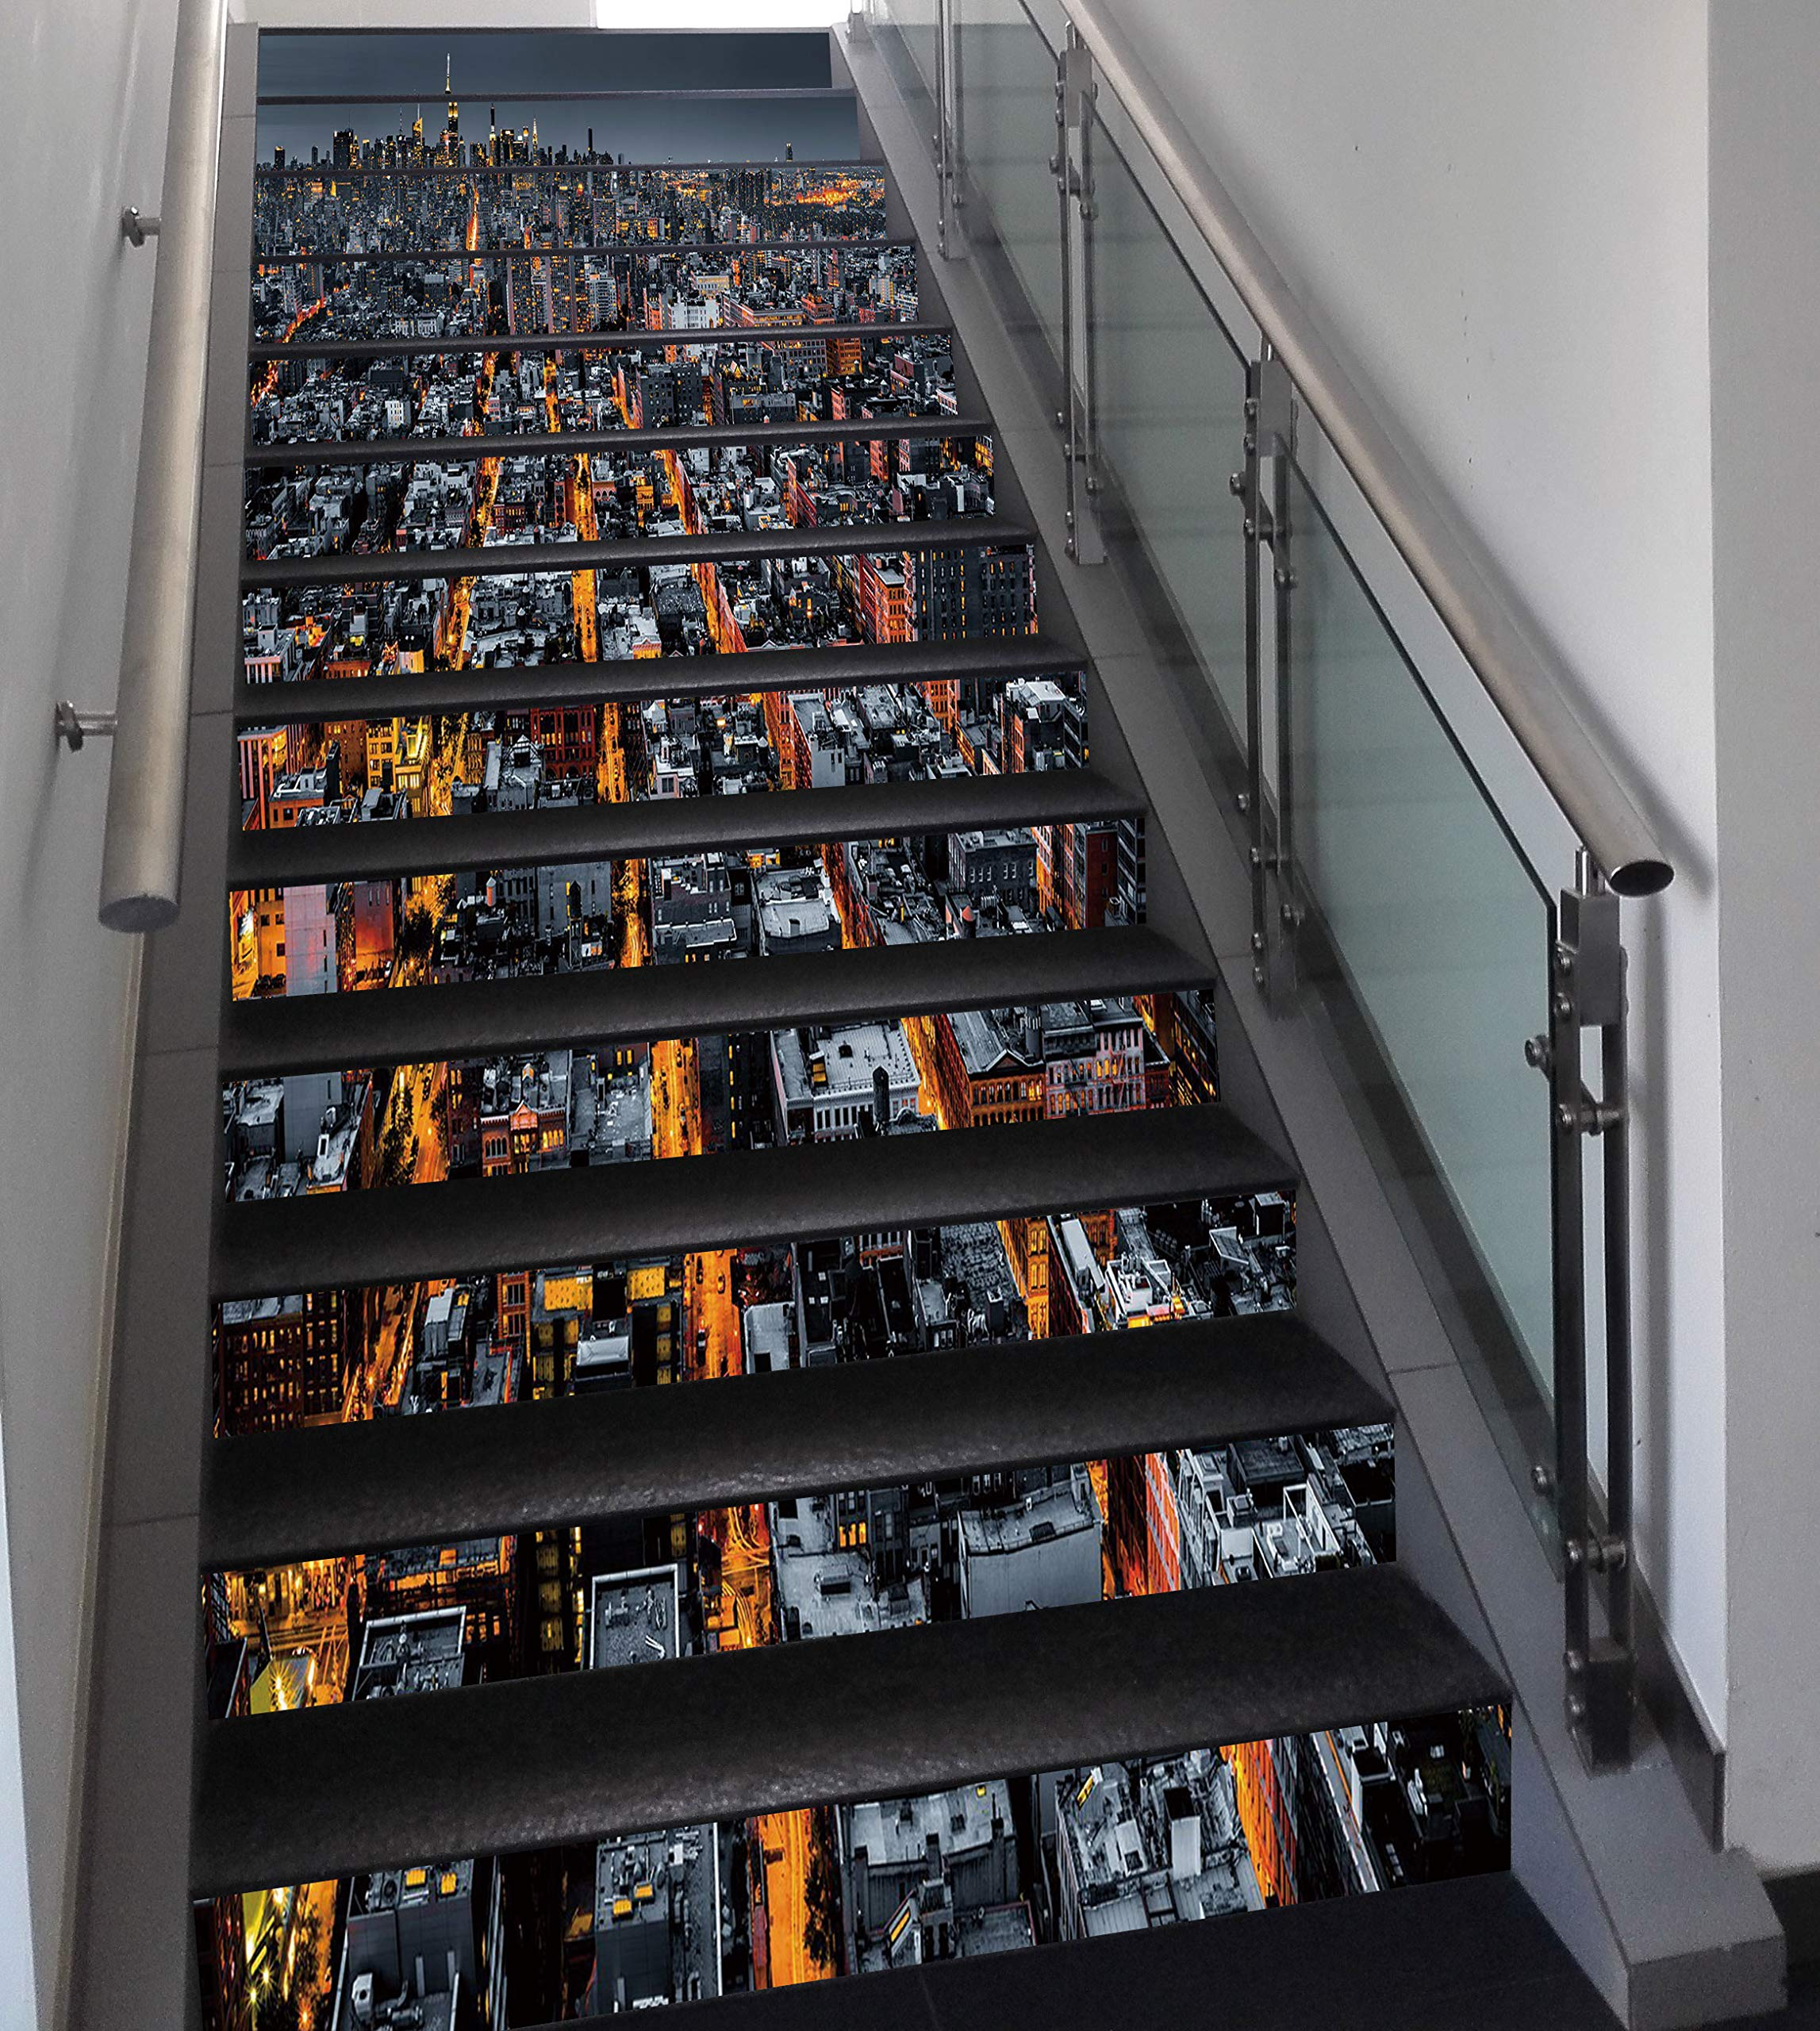 Stair Stickers Wall Stickers,13 PCS Self-adhesive,City,Avenues Converging Towards Midtown in New York America Architecture Aerial,Marigold Grey Black,Stair Riser Decal for Living Room, Hall, Kids Room